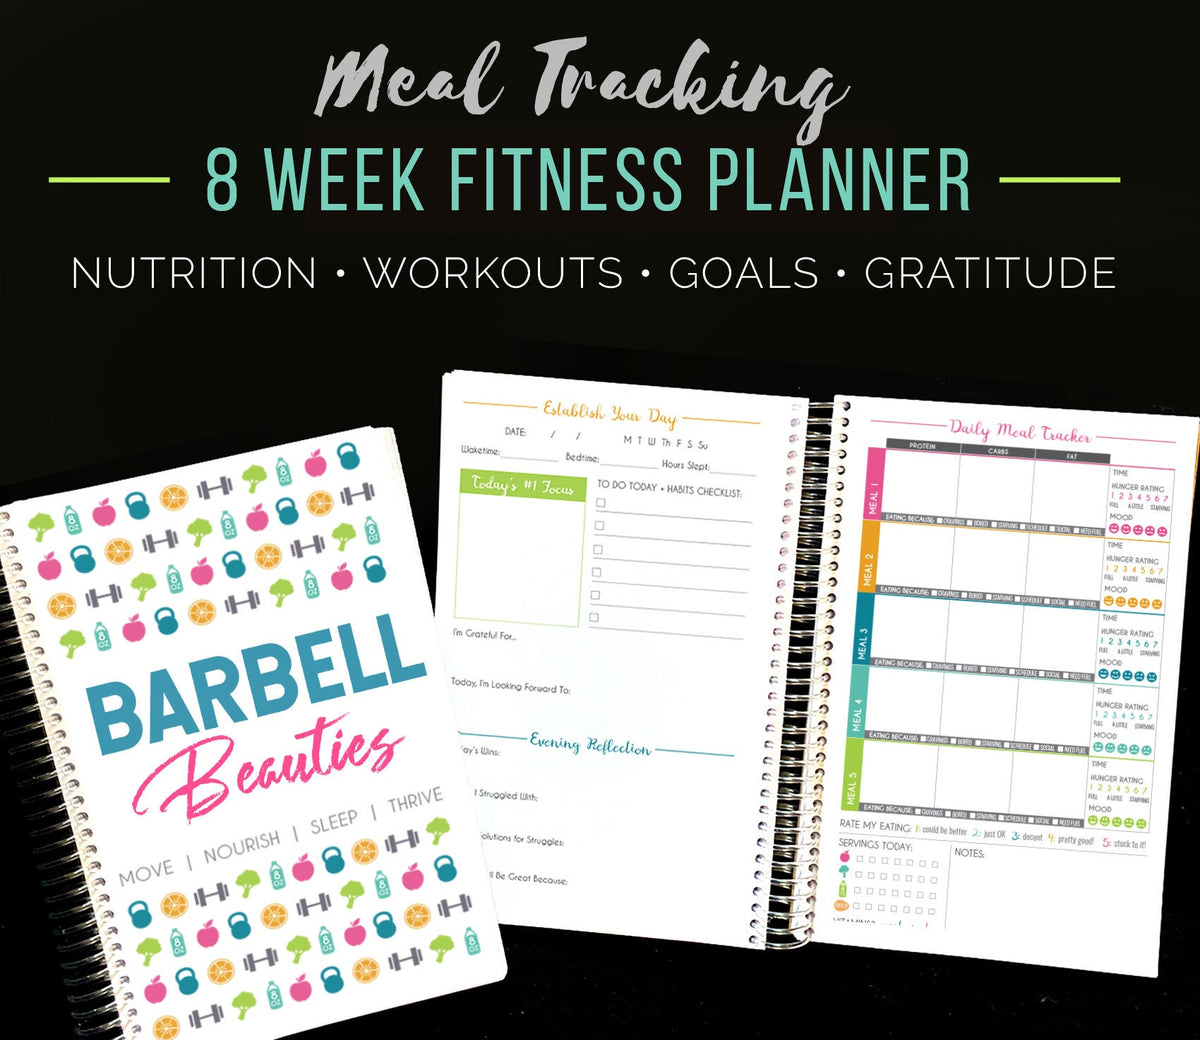 Barbell Beauties 8 Week Diet Fitness Planner, Nutrition Weight Loss Notebook